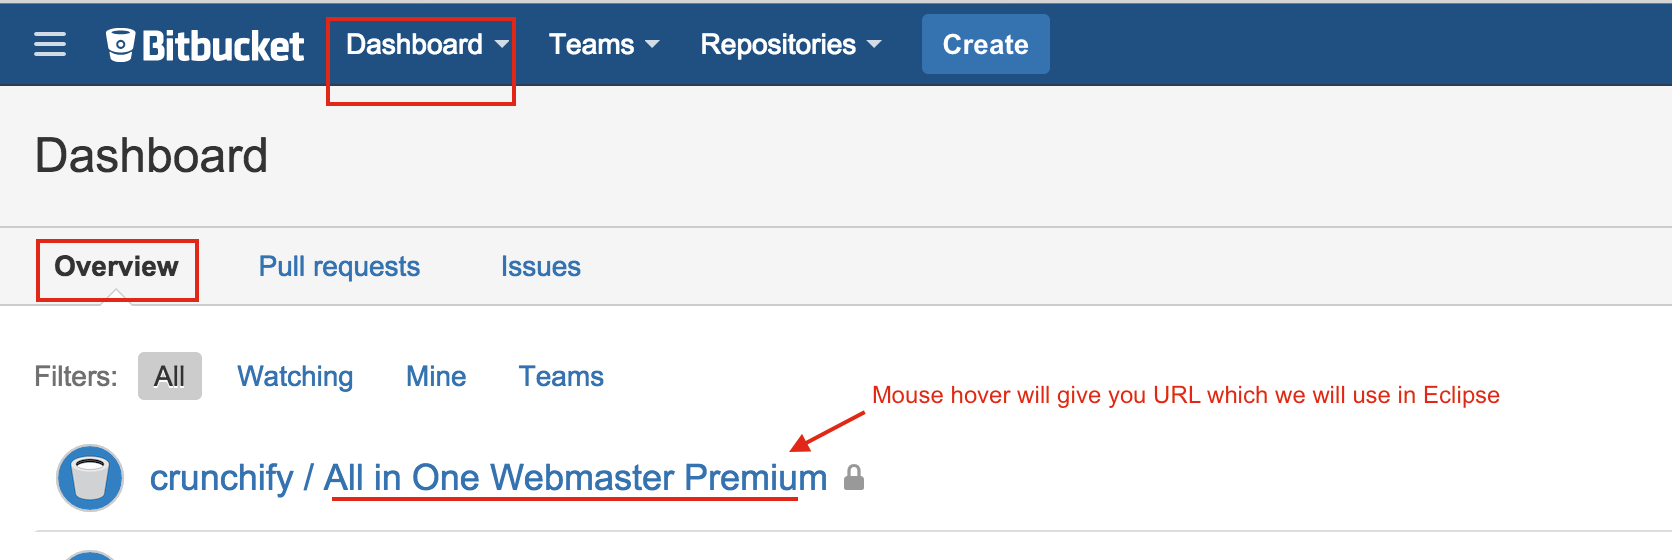 Create Repository Bitbucket